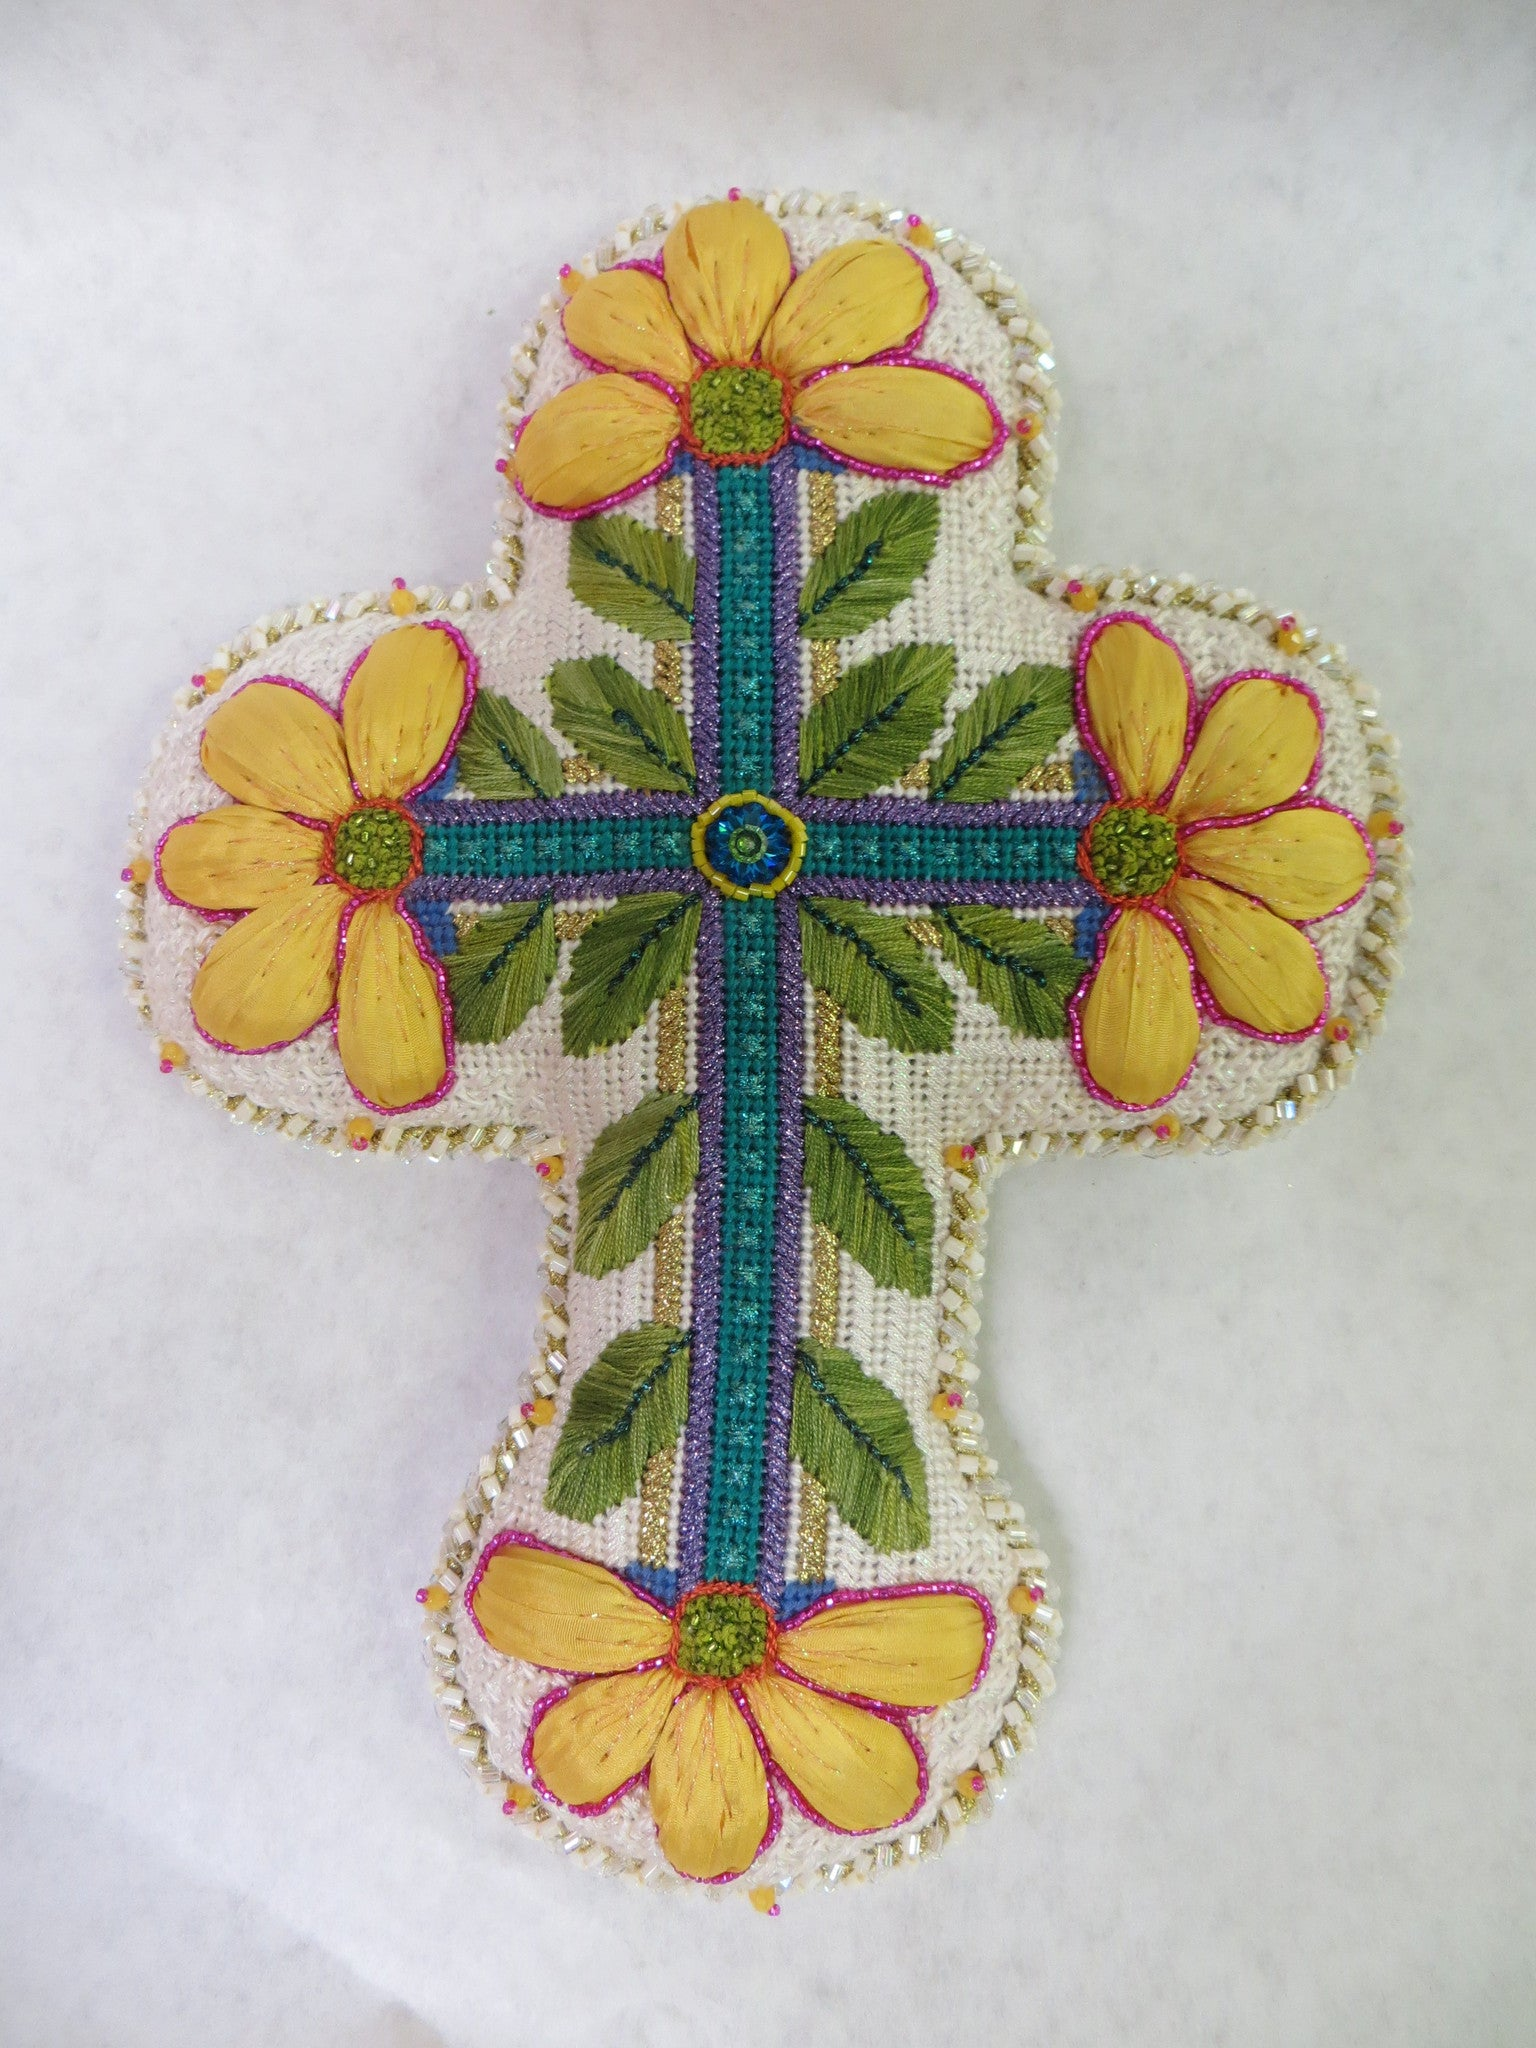 Large Cross with A Yellow Flower at Each End